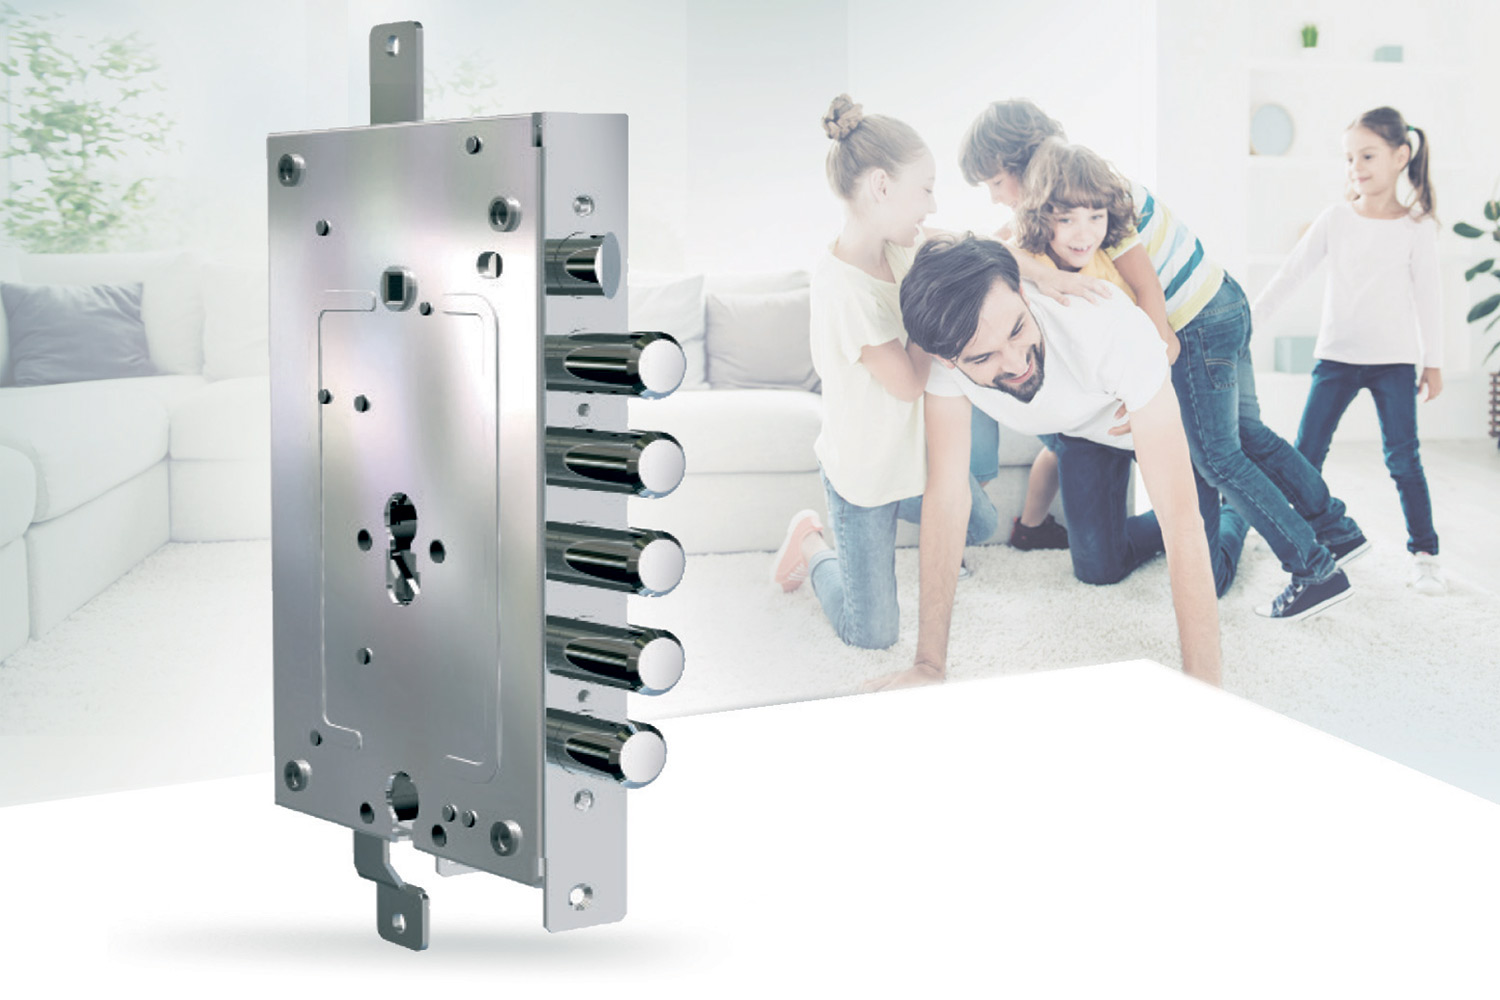 multi-function lock for armored door with a dad playing with children in the background